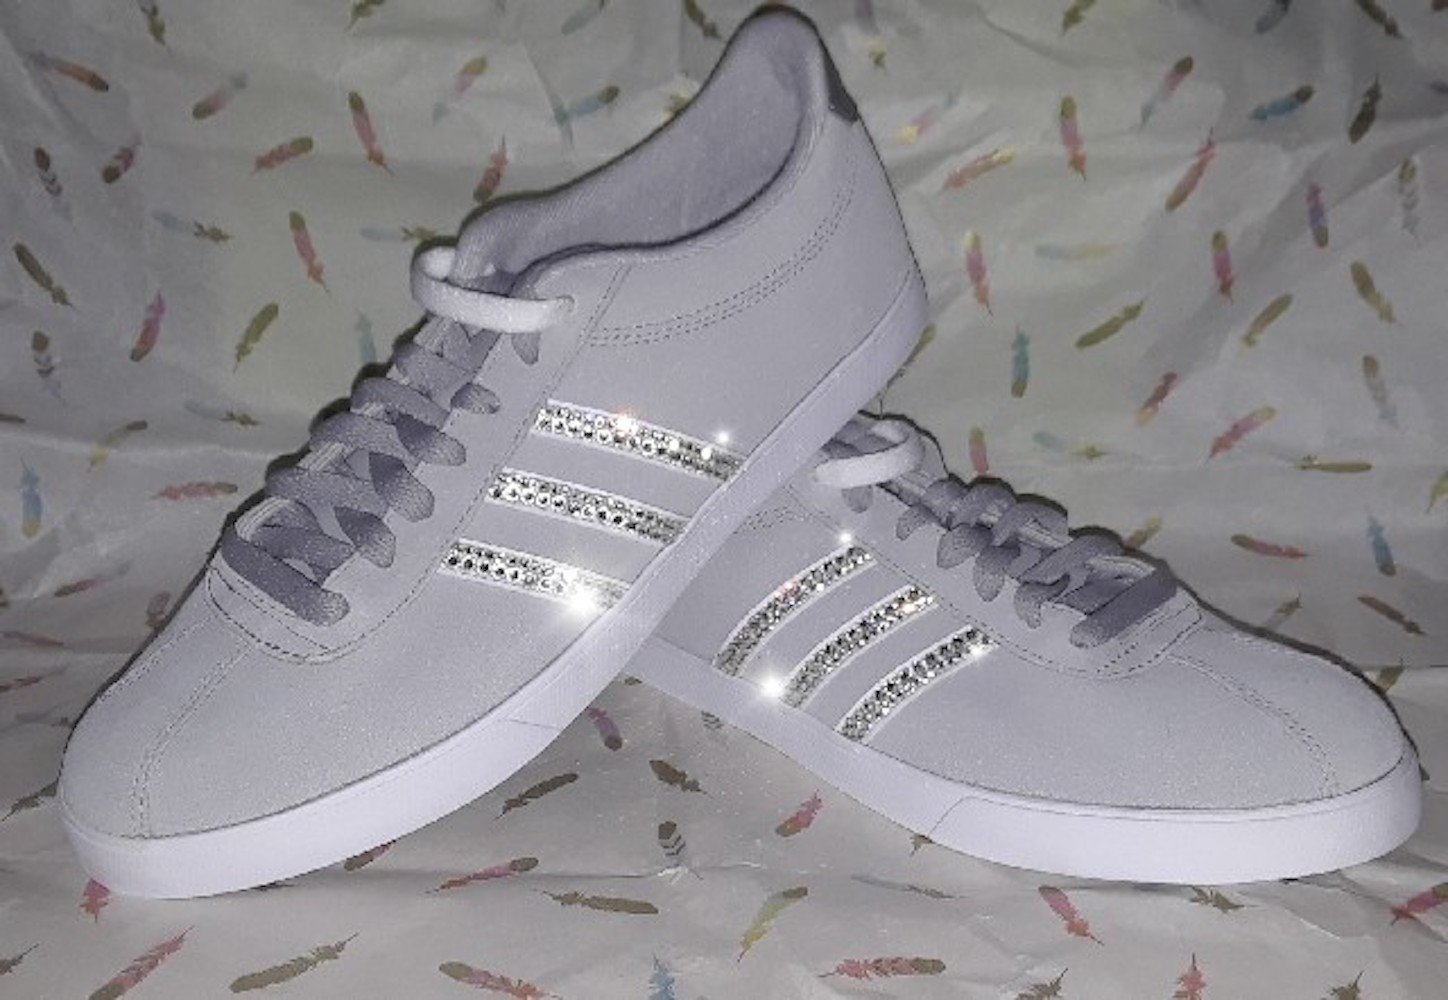 Adidas NEO courset womens suede sneakers, Bling Adidas, Womens adidas sneakers, Grey suede adidas, Swarovski adidas sneakers